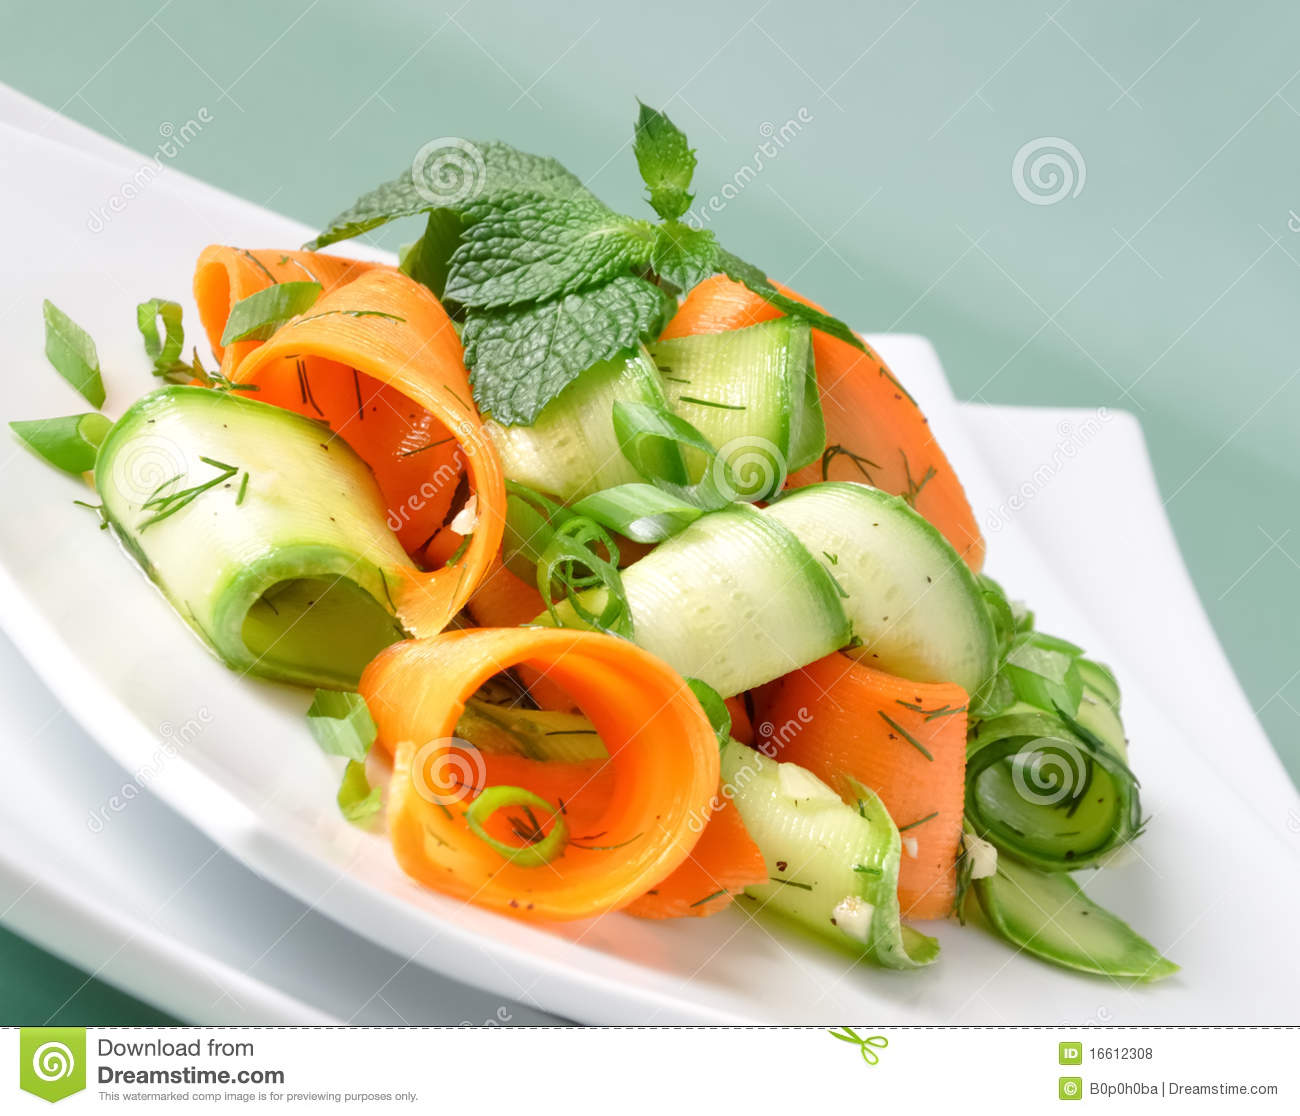 Zucchini Salad With Carrots Royalty Free Stock Photos - Image ...